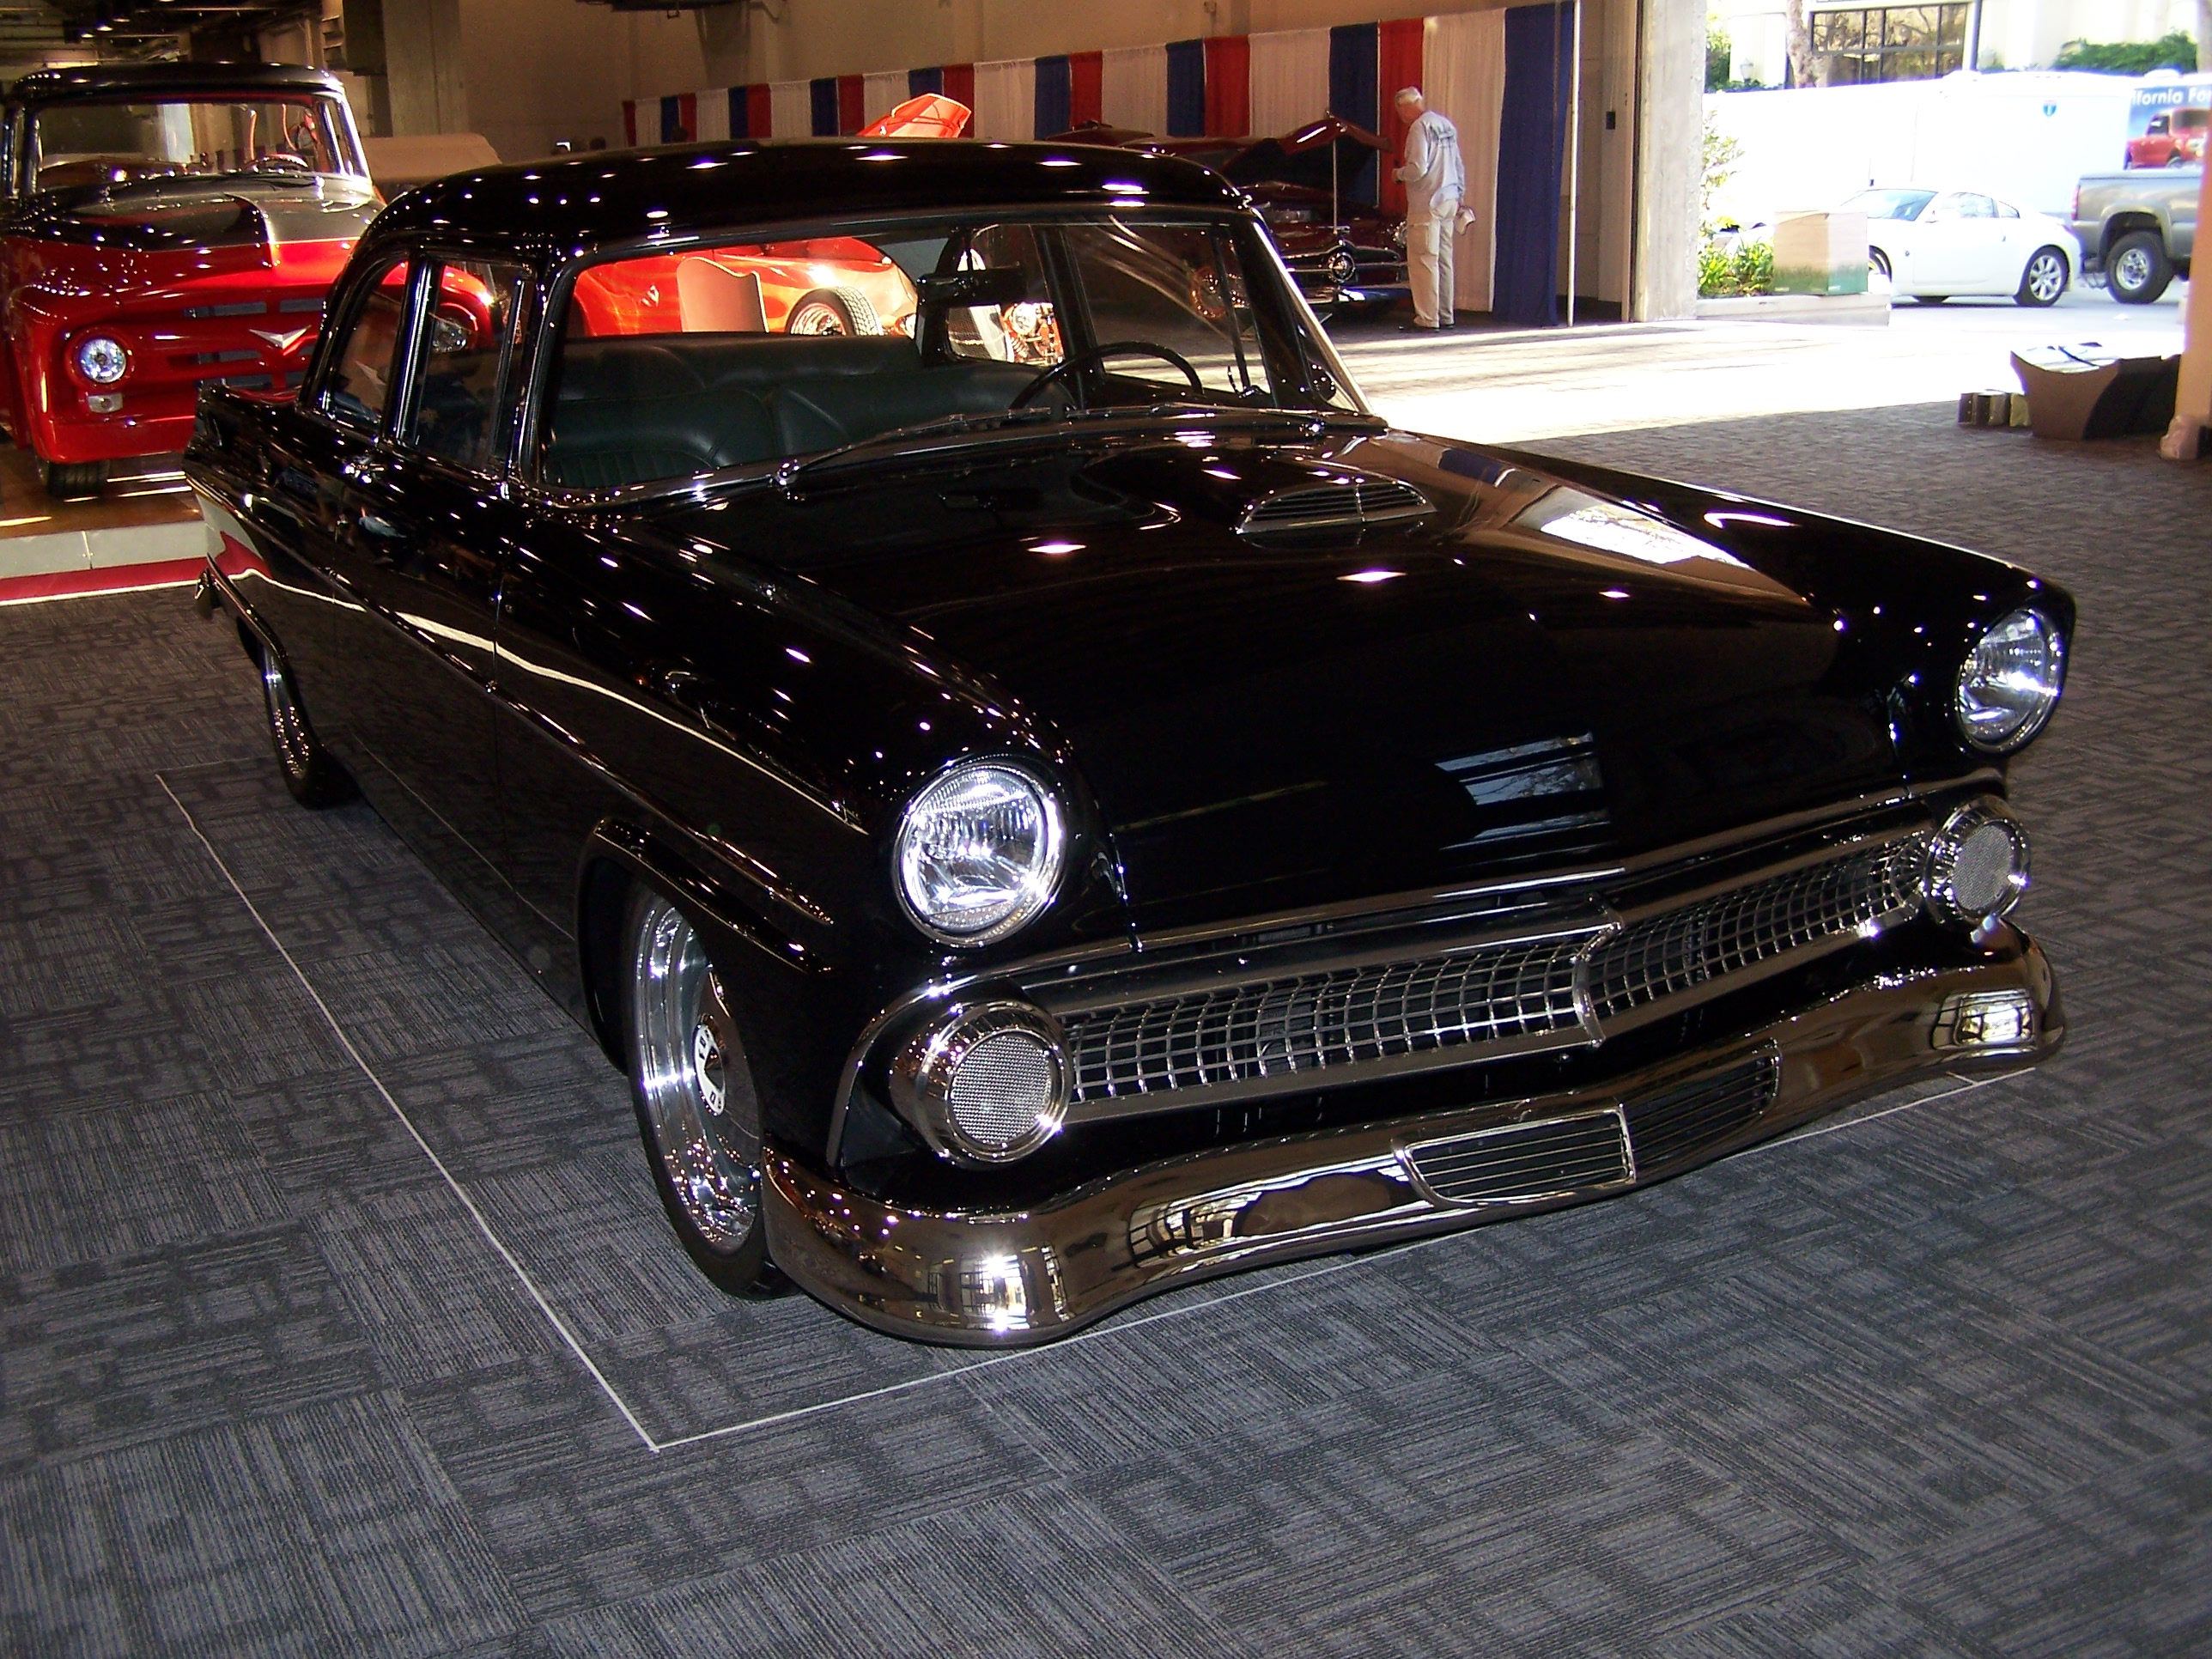 Allen's 1955 Ford Club Coupe Photo: hotrod